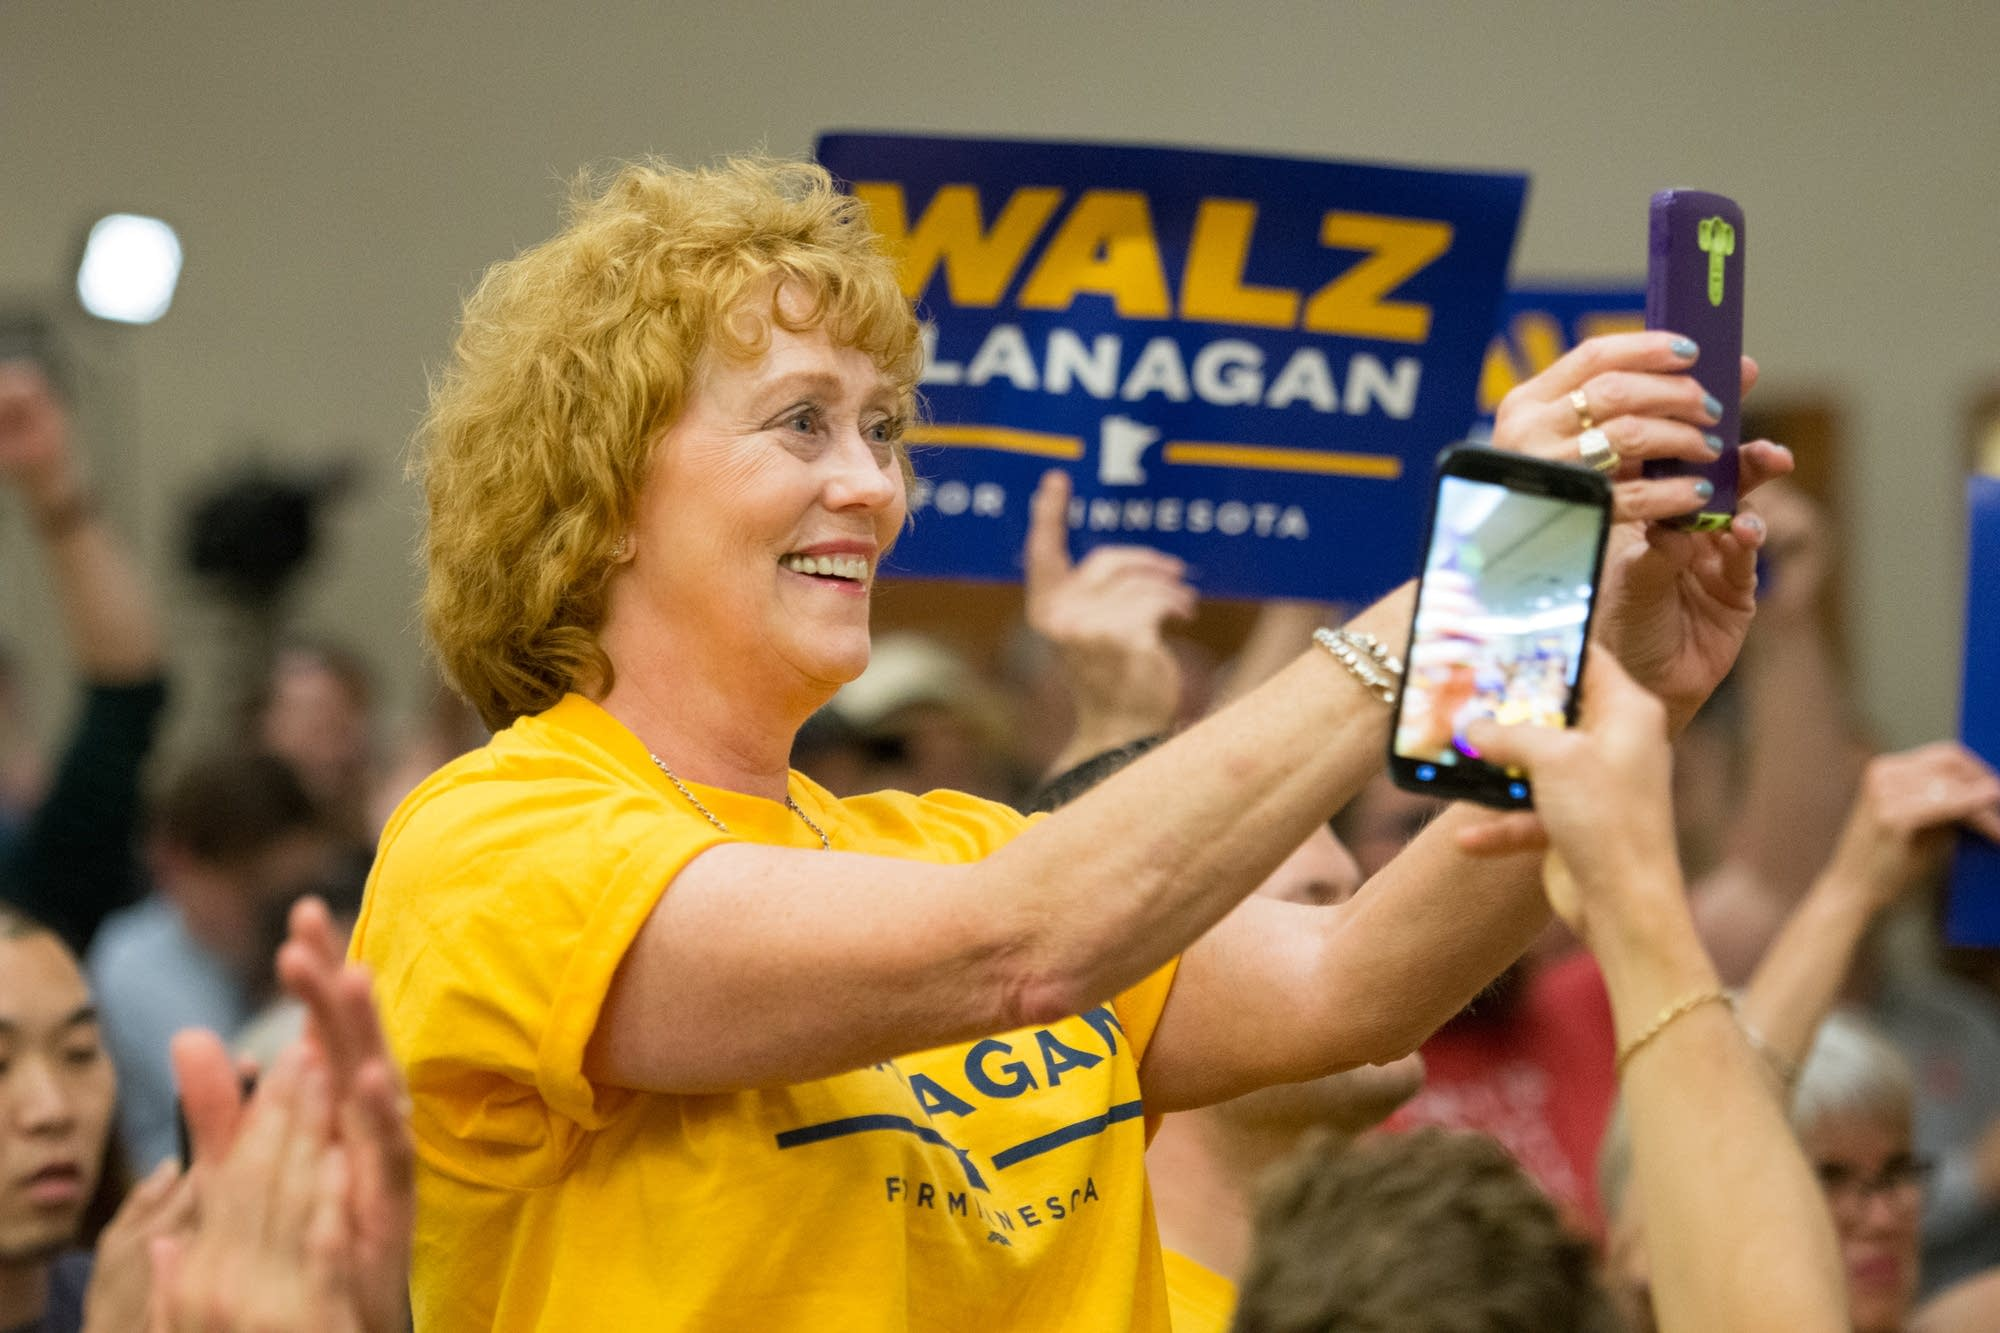 A supporter cheers while gubernatorial candidate Tim Walz speaks.